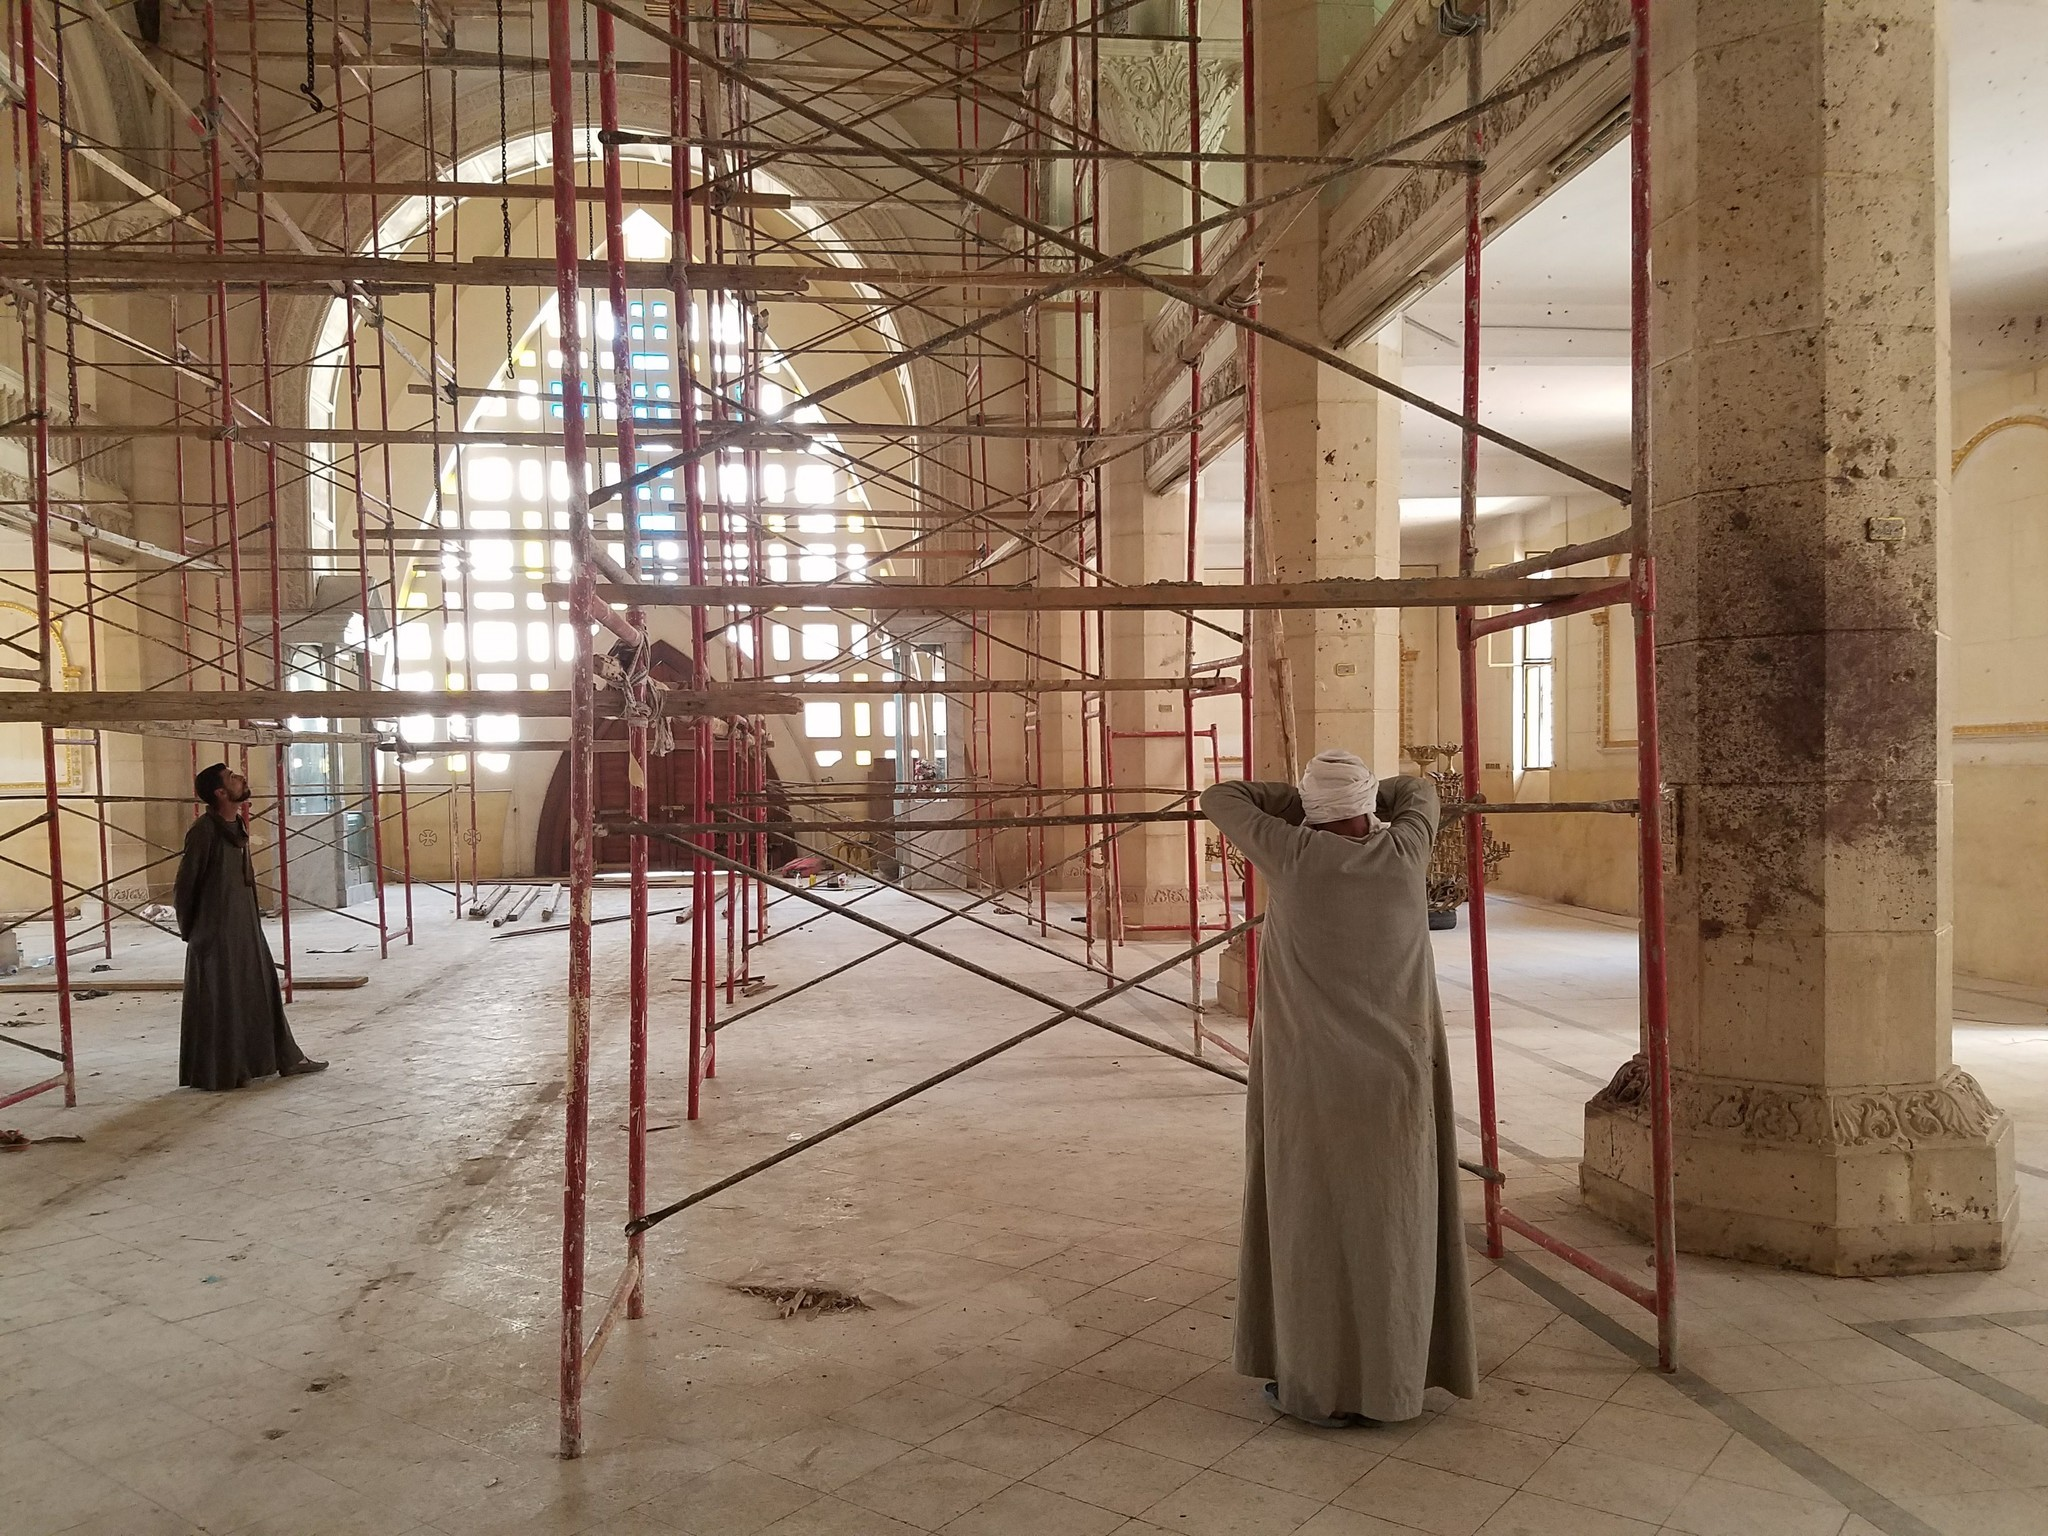 Workers repair St. George Church in Tanta, Egypt, after a bombing killed 28 people